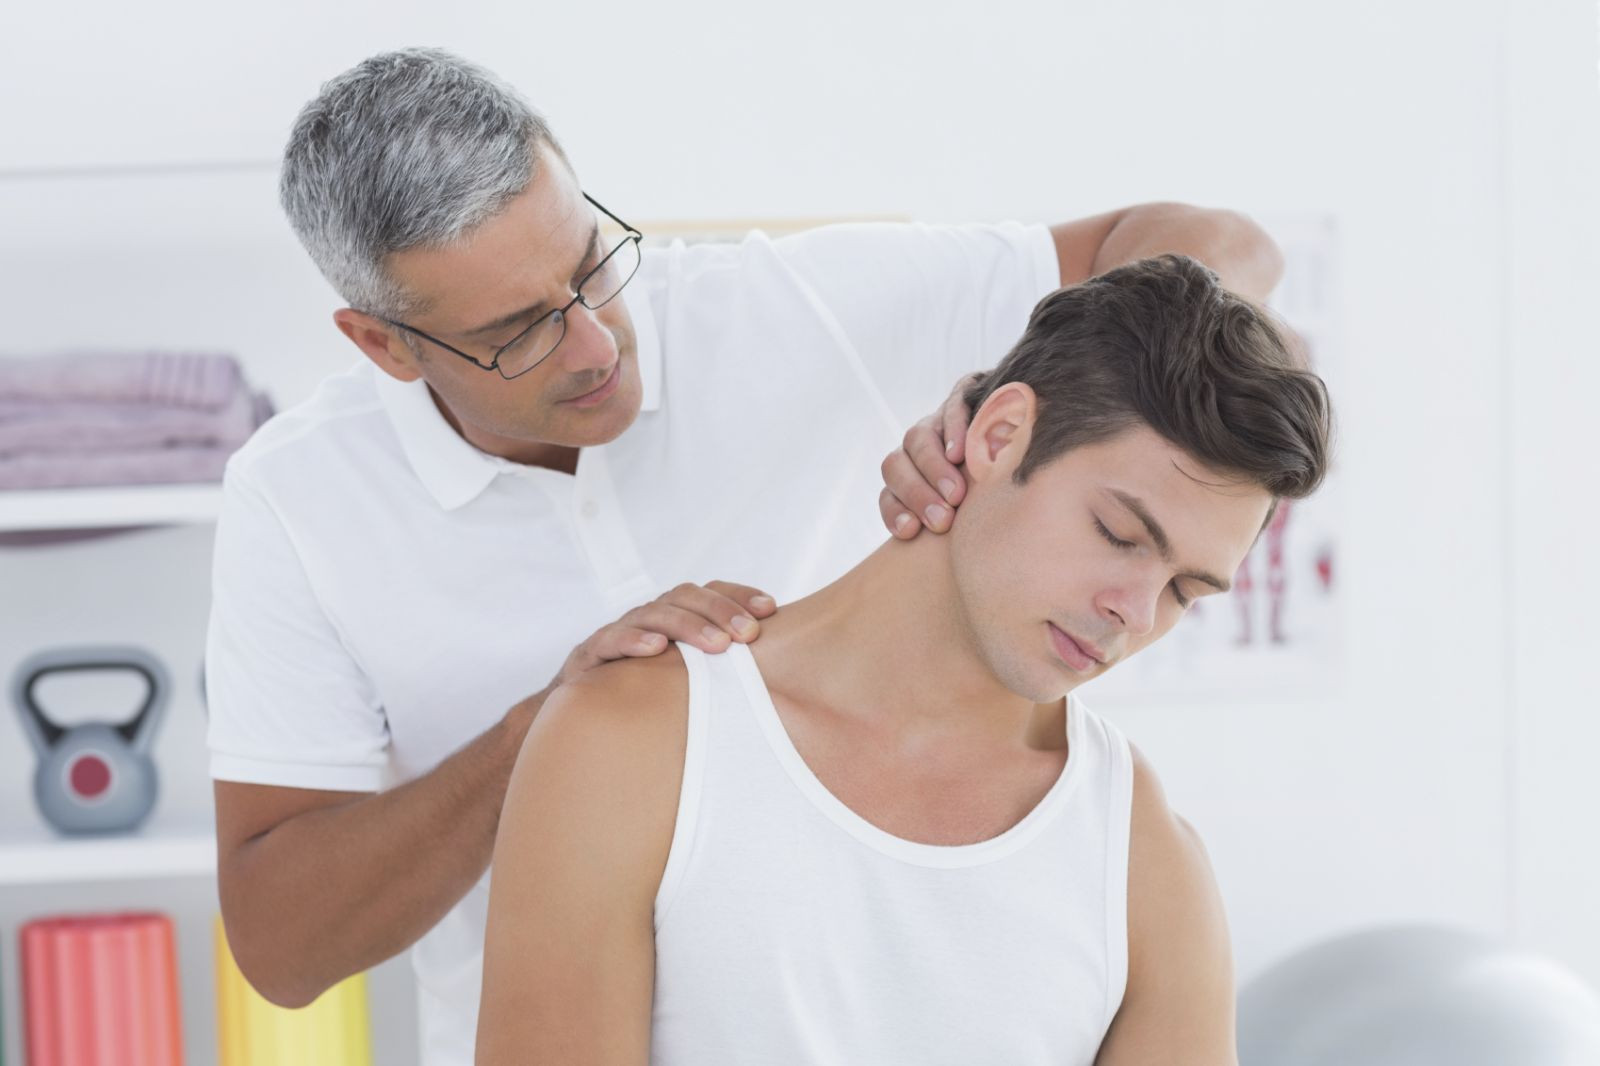 Addressing Persistent Neck And Back Pain Through Advanced Care Options In Georgia